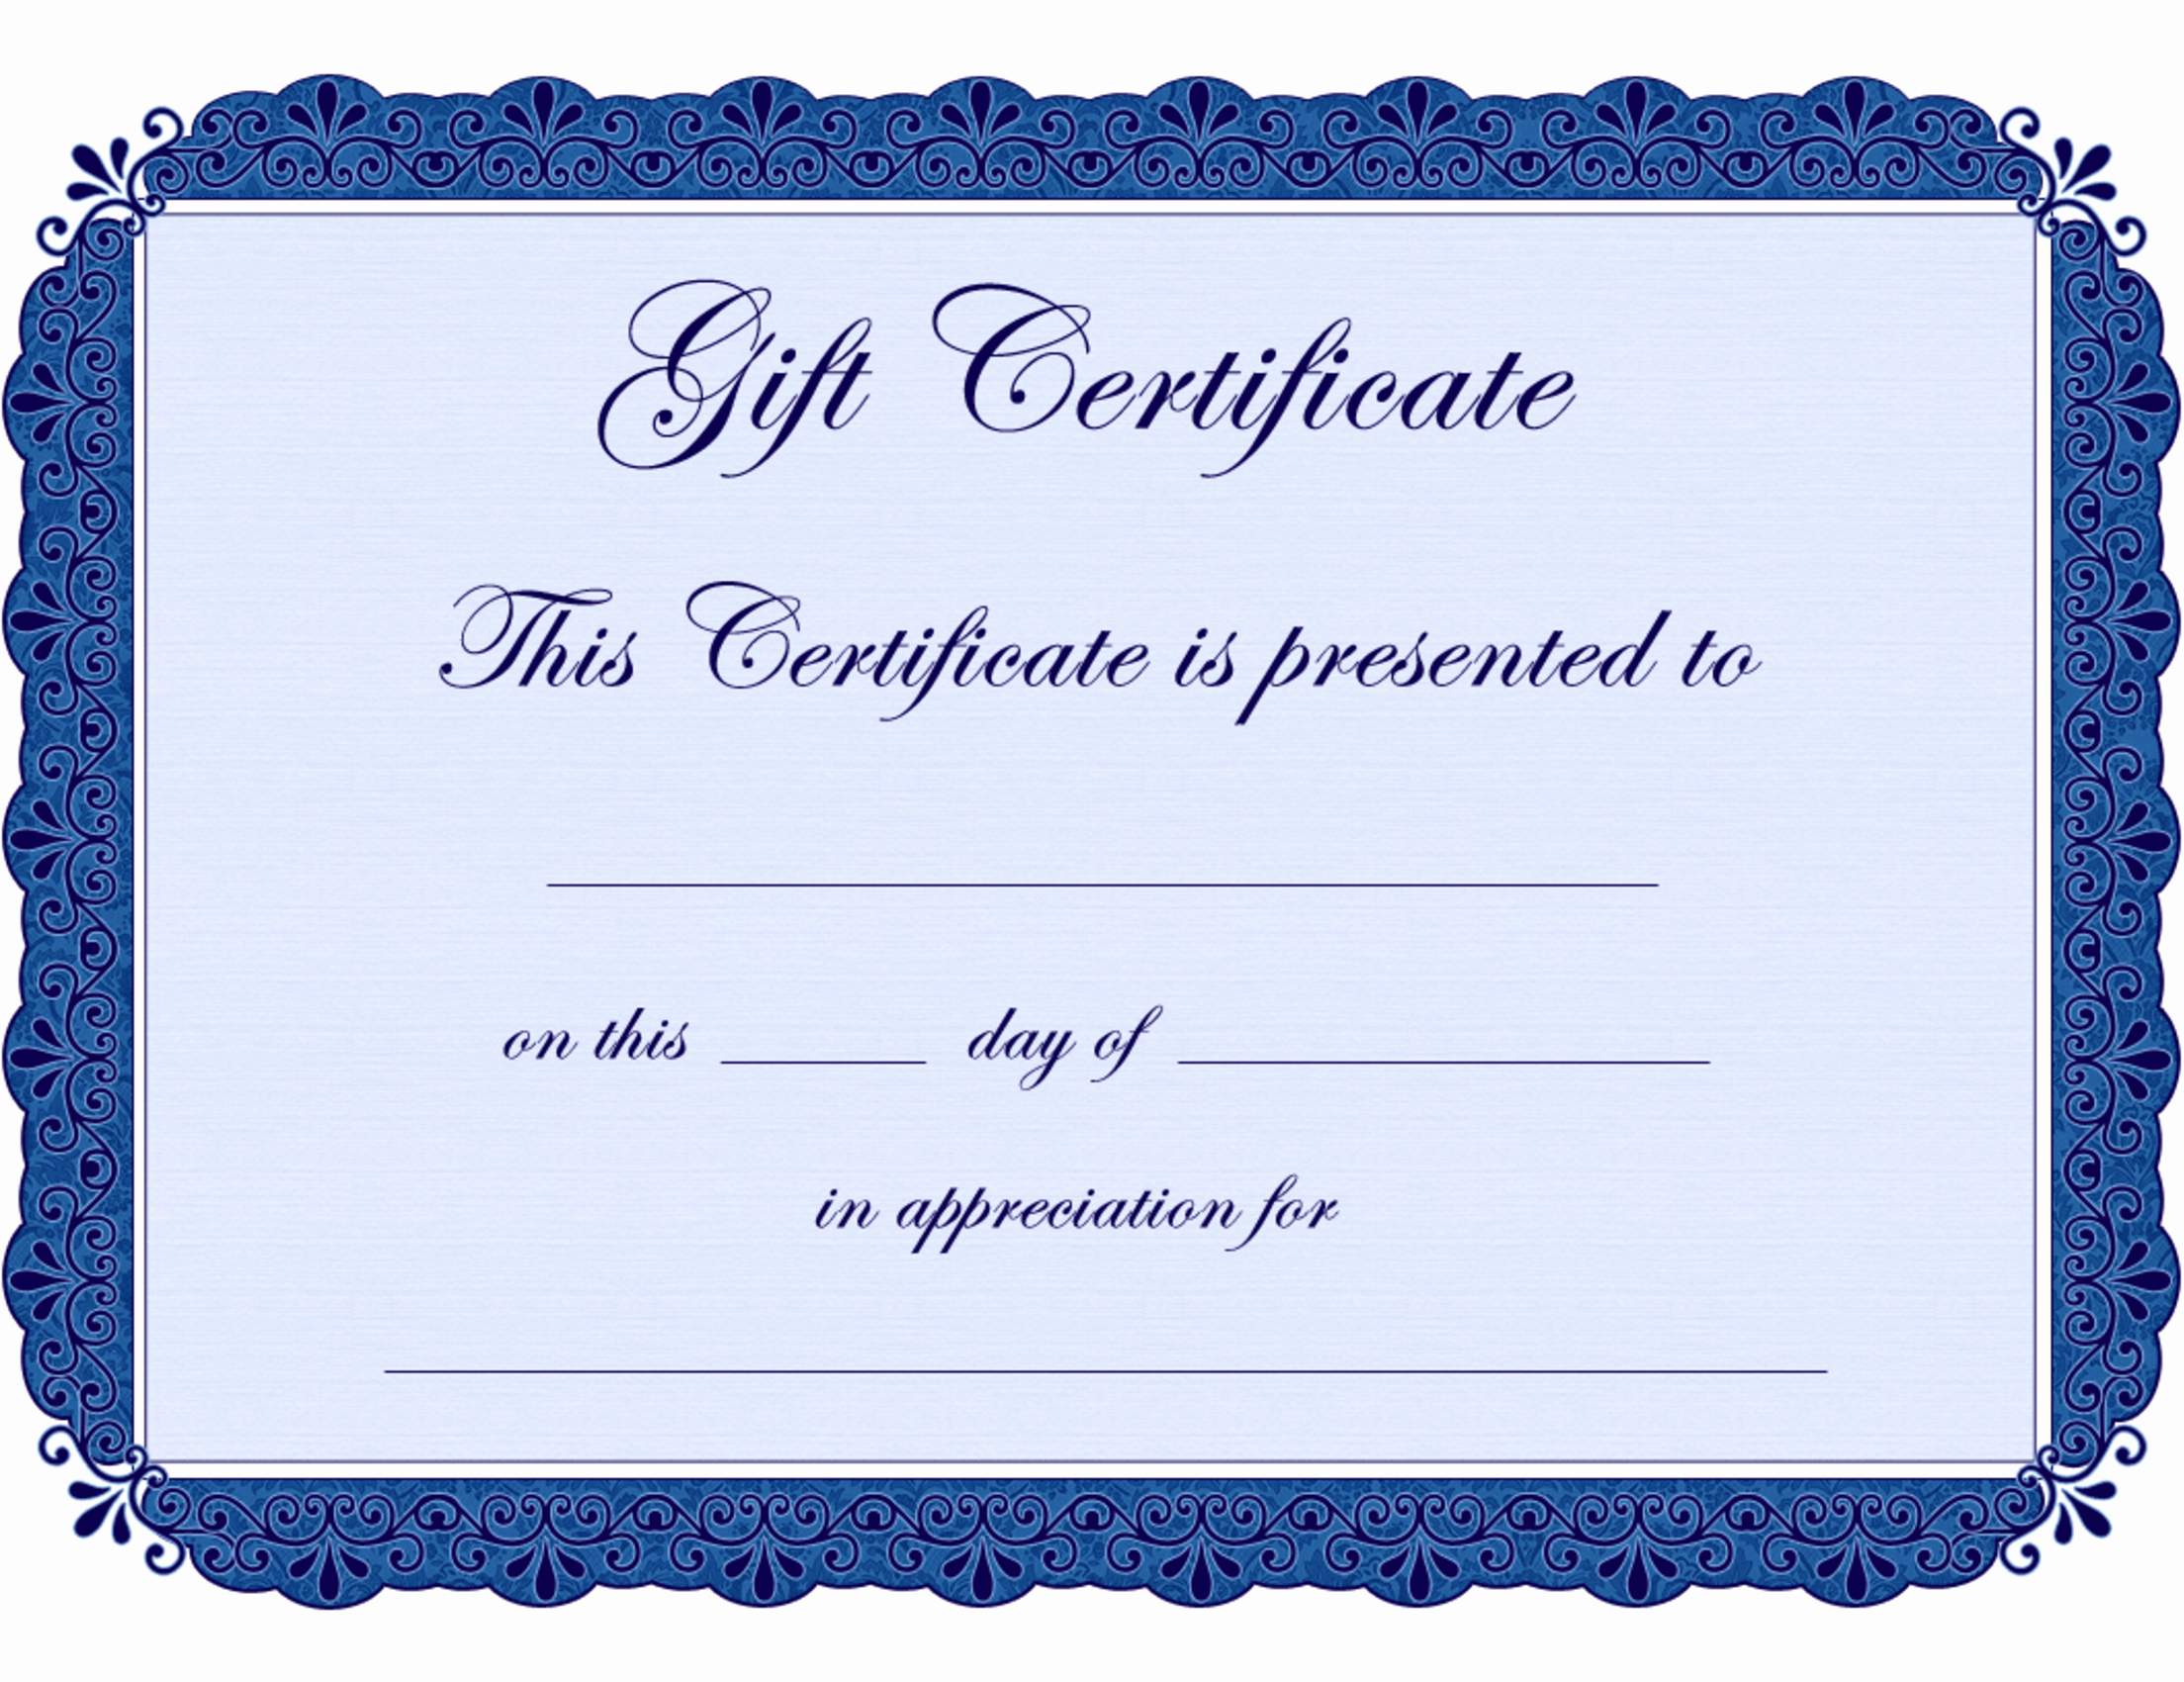 Ms Word Gift Certificate Template Lovely Gift Certificate Templates Microsoft Fice Templates